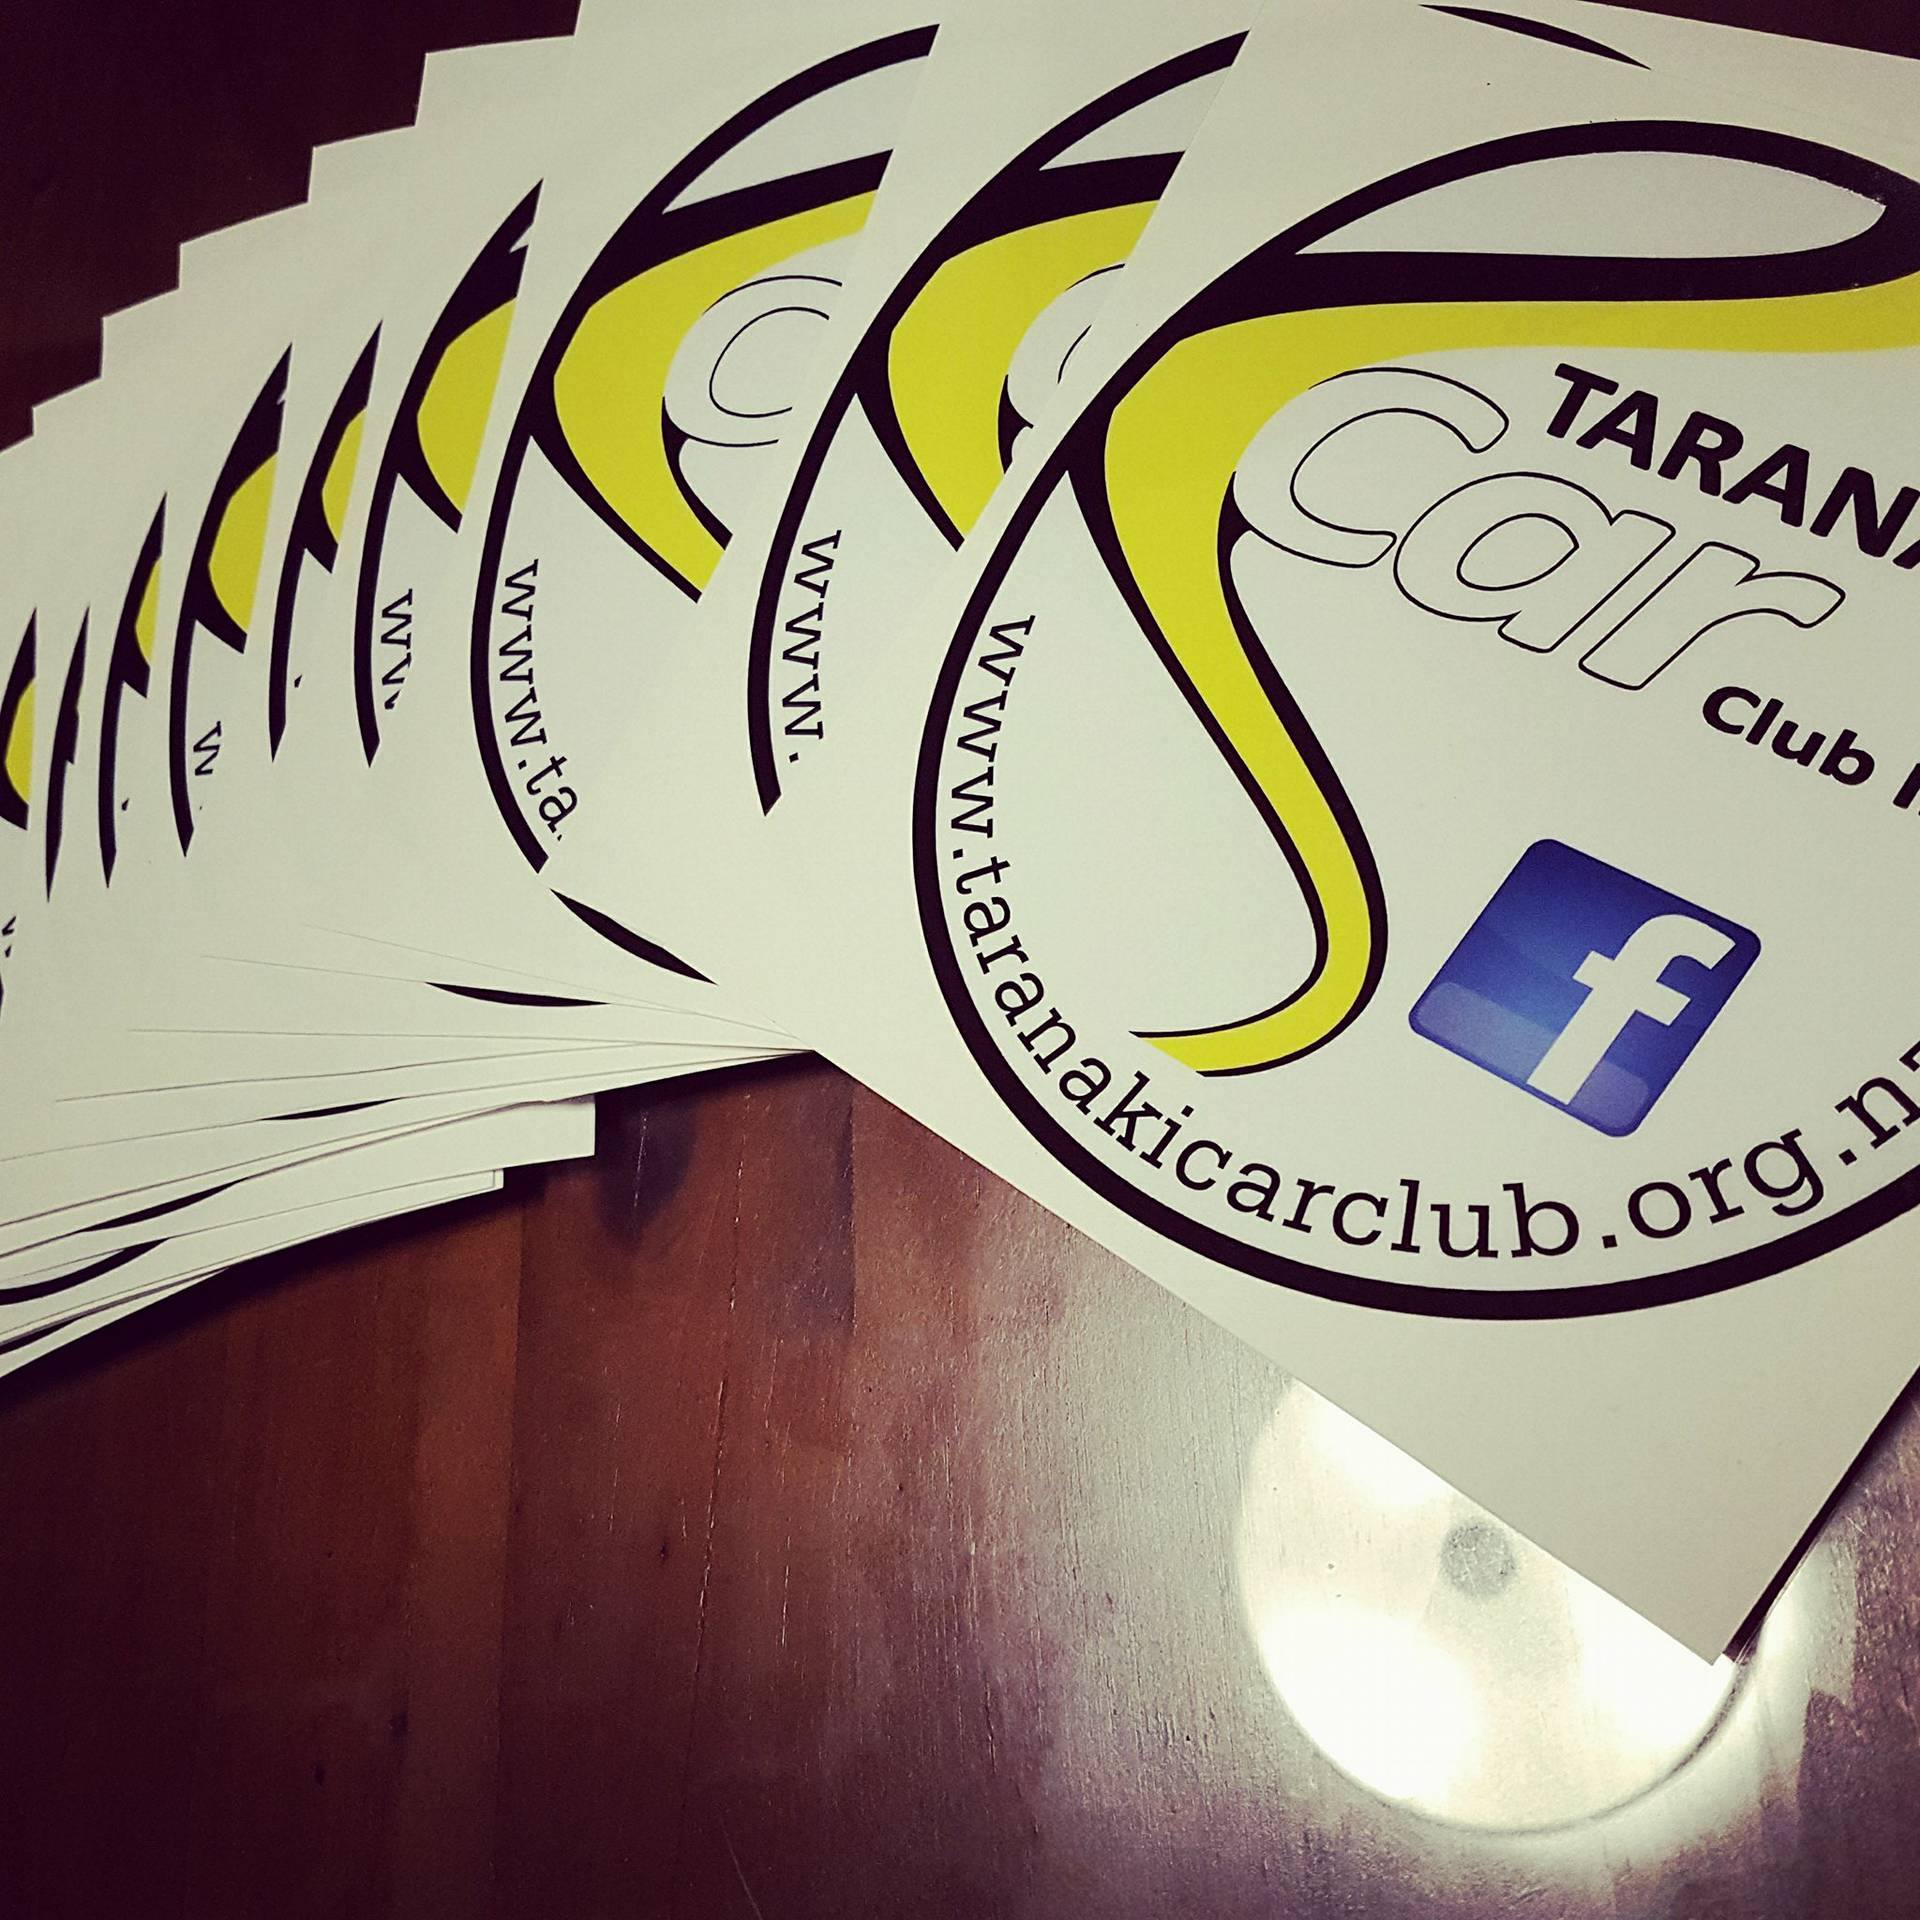 Contact Larni to get your TCC stickers